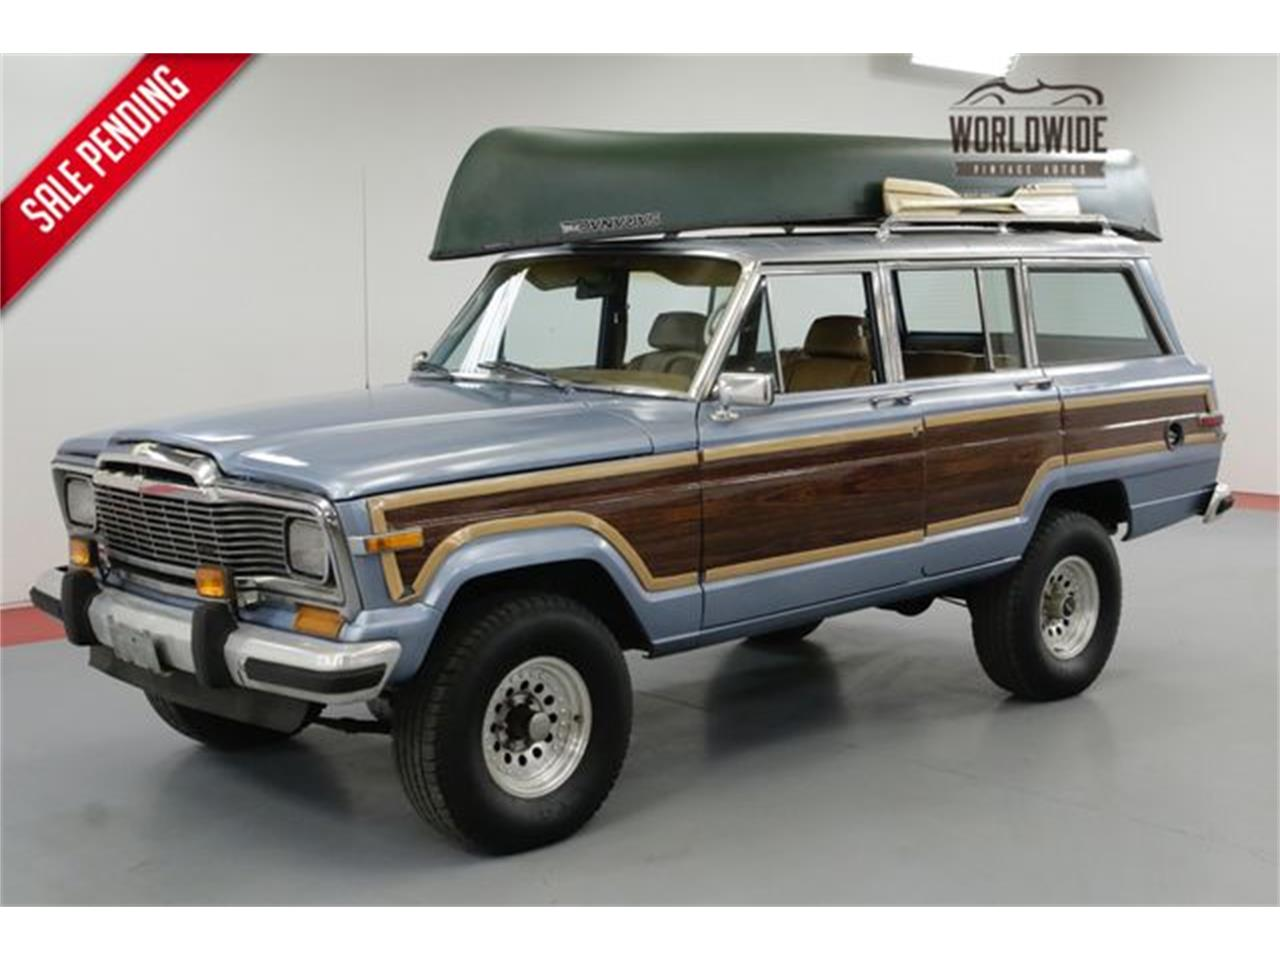 Jeep Grand Wagoneer >> 1985 Jeep Grand Wagoneer For Sale Classiccars Com Cc 1129247